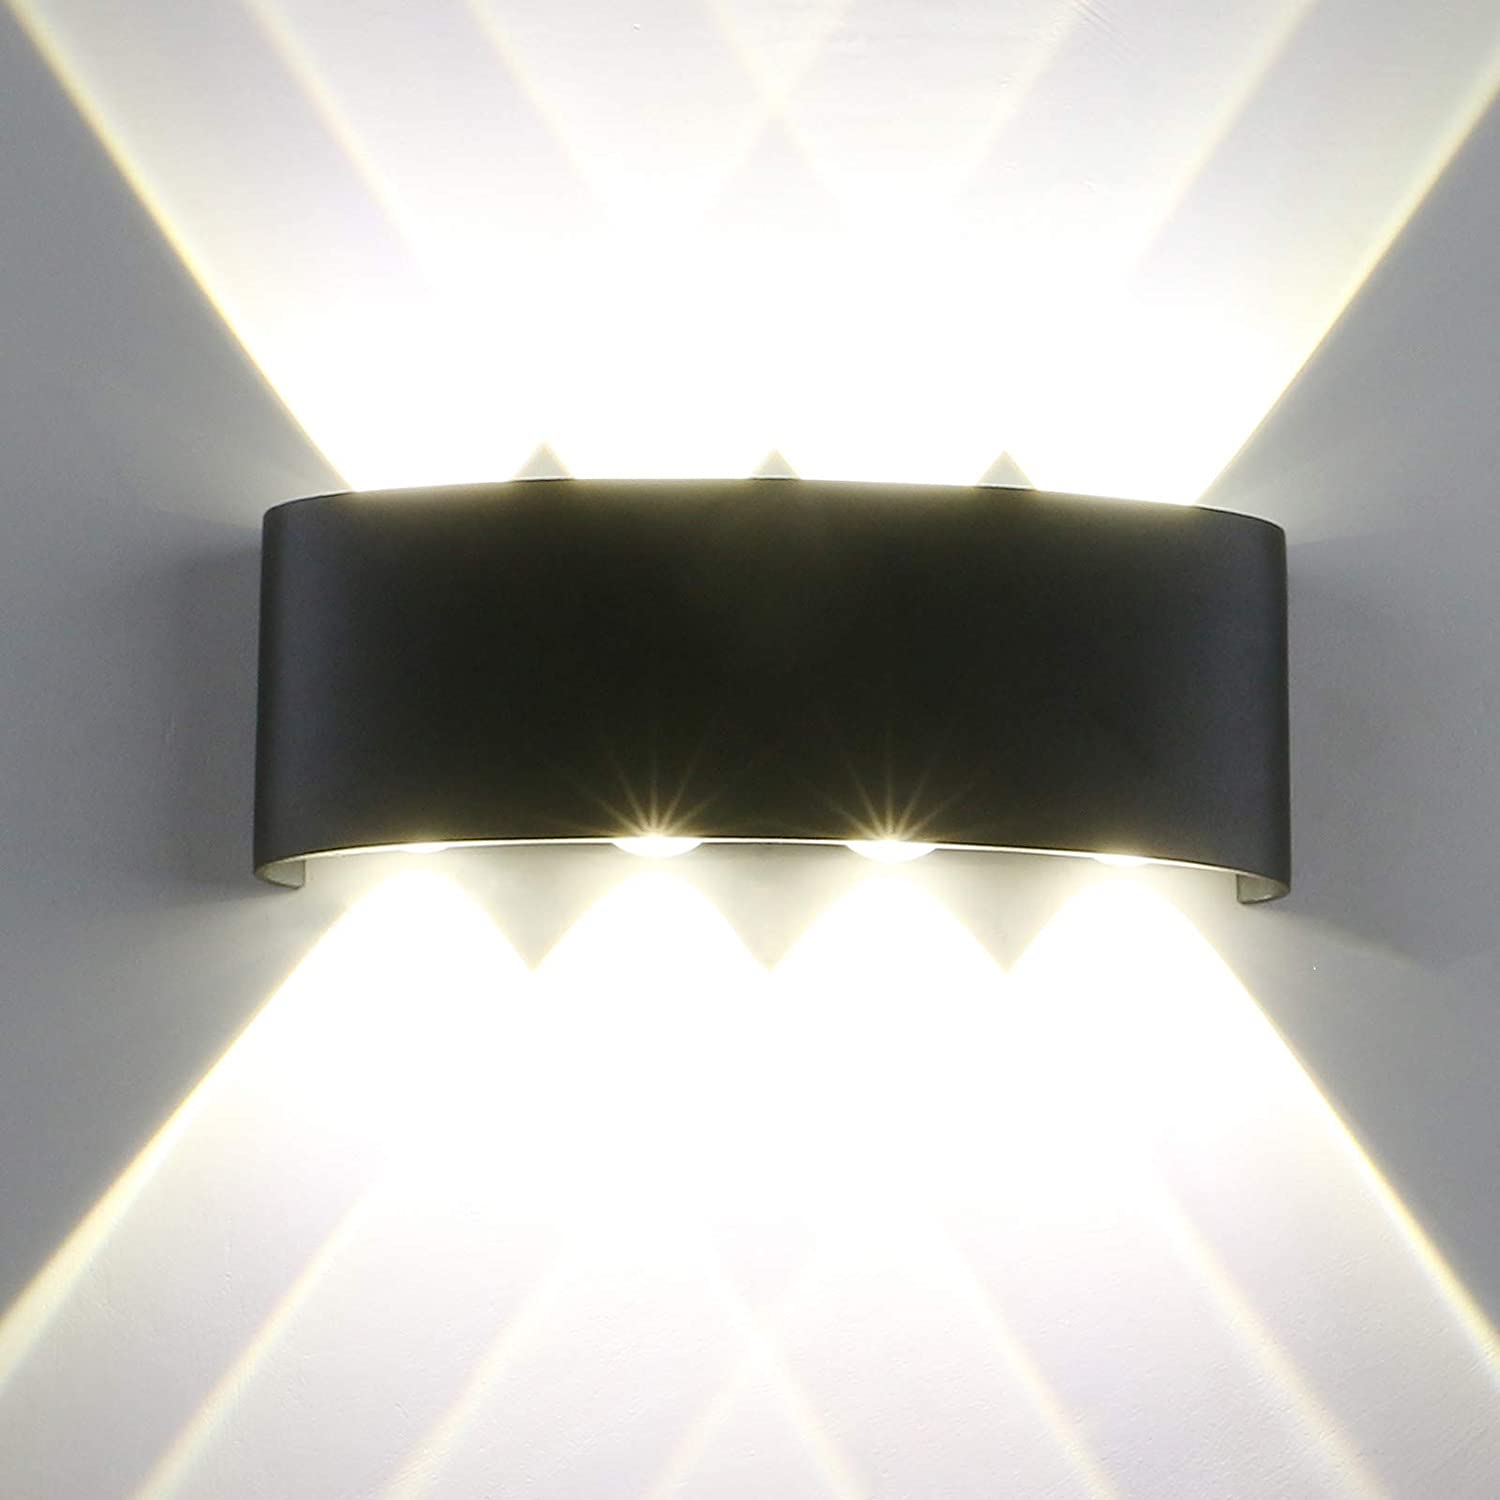 Pathson Modern Outdoor Wall Light 8 Sco Porch Hallway Sales for sale Limited price LEDs